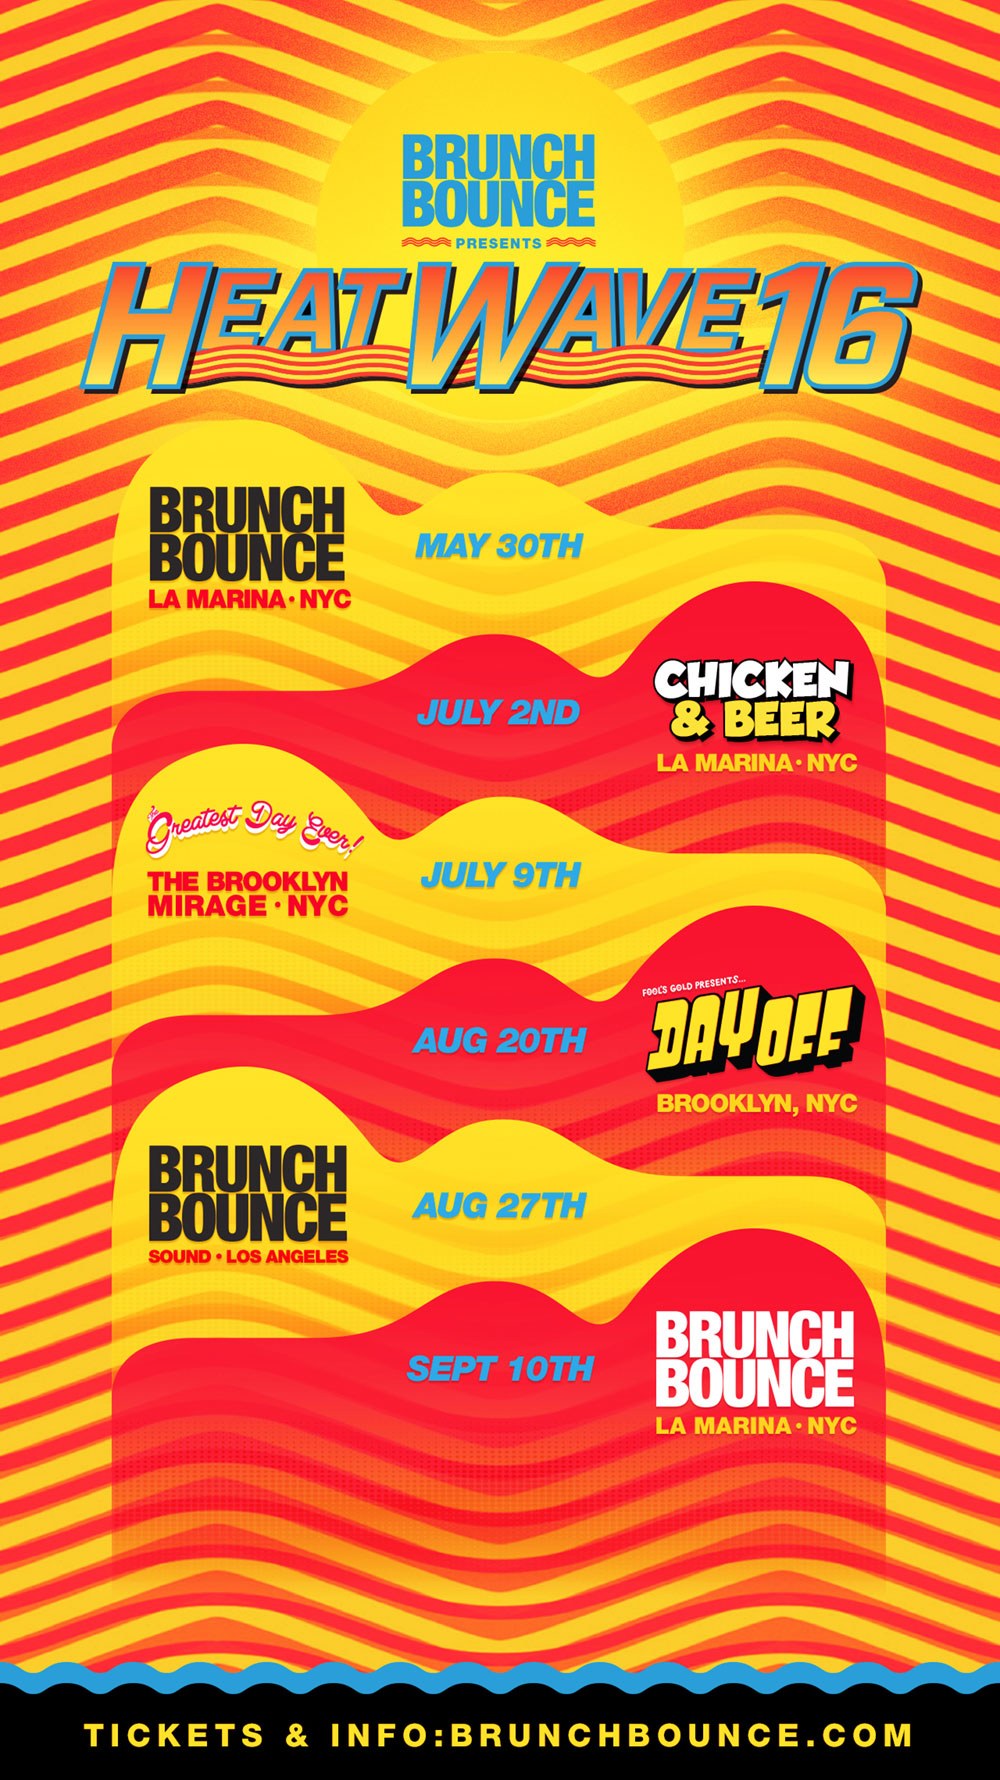 Tour Flyer For Brunch Bounce